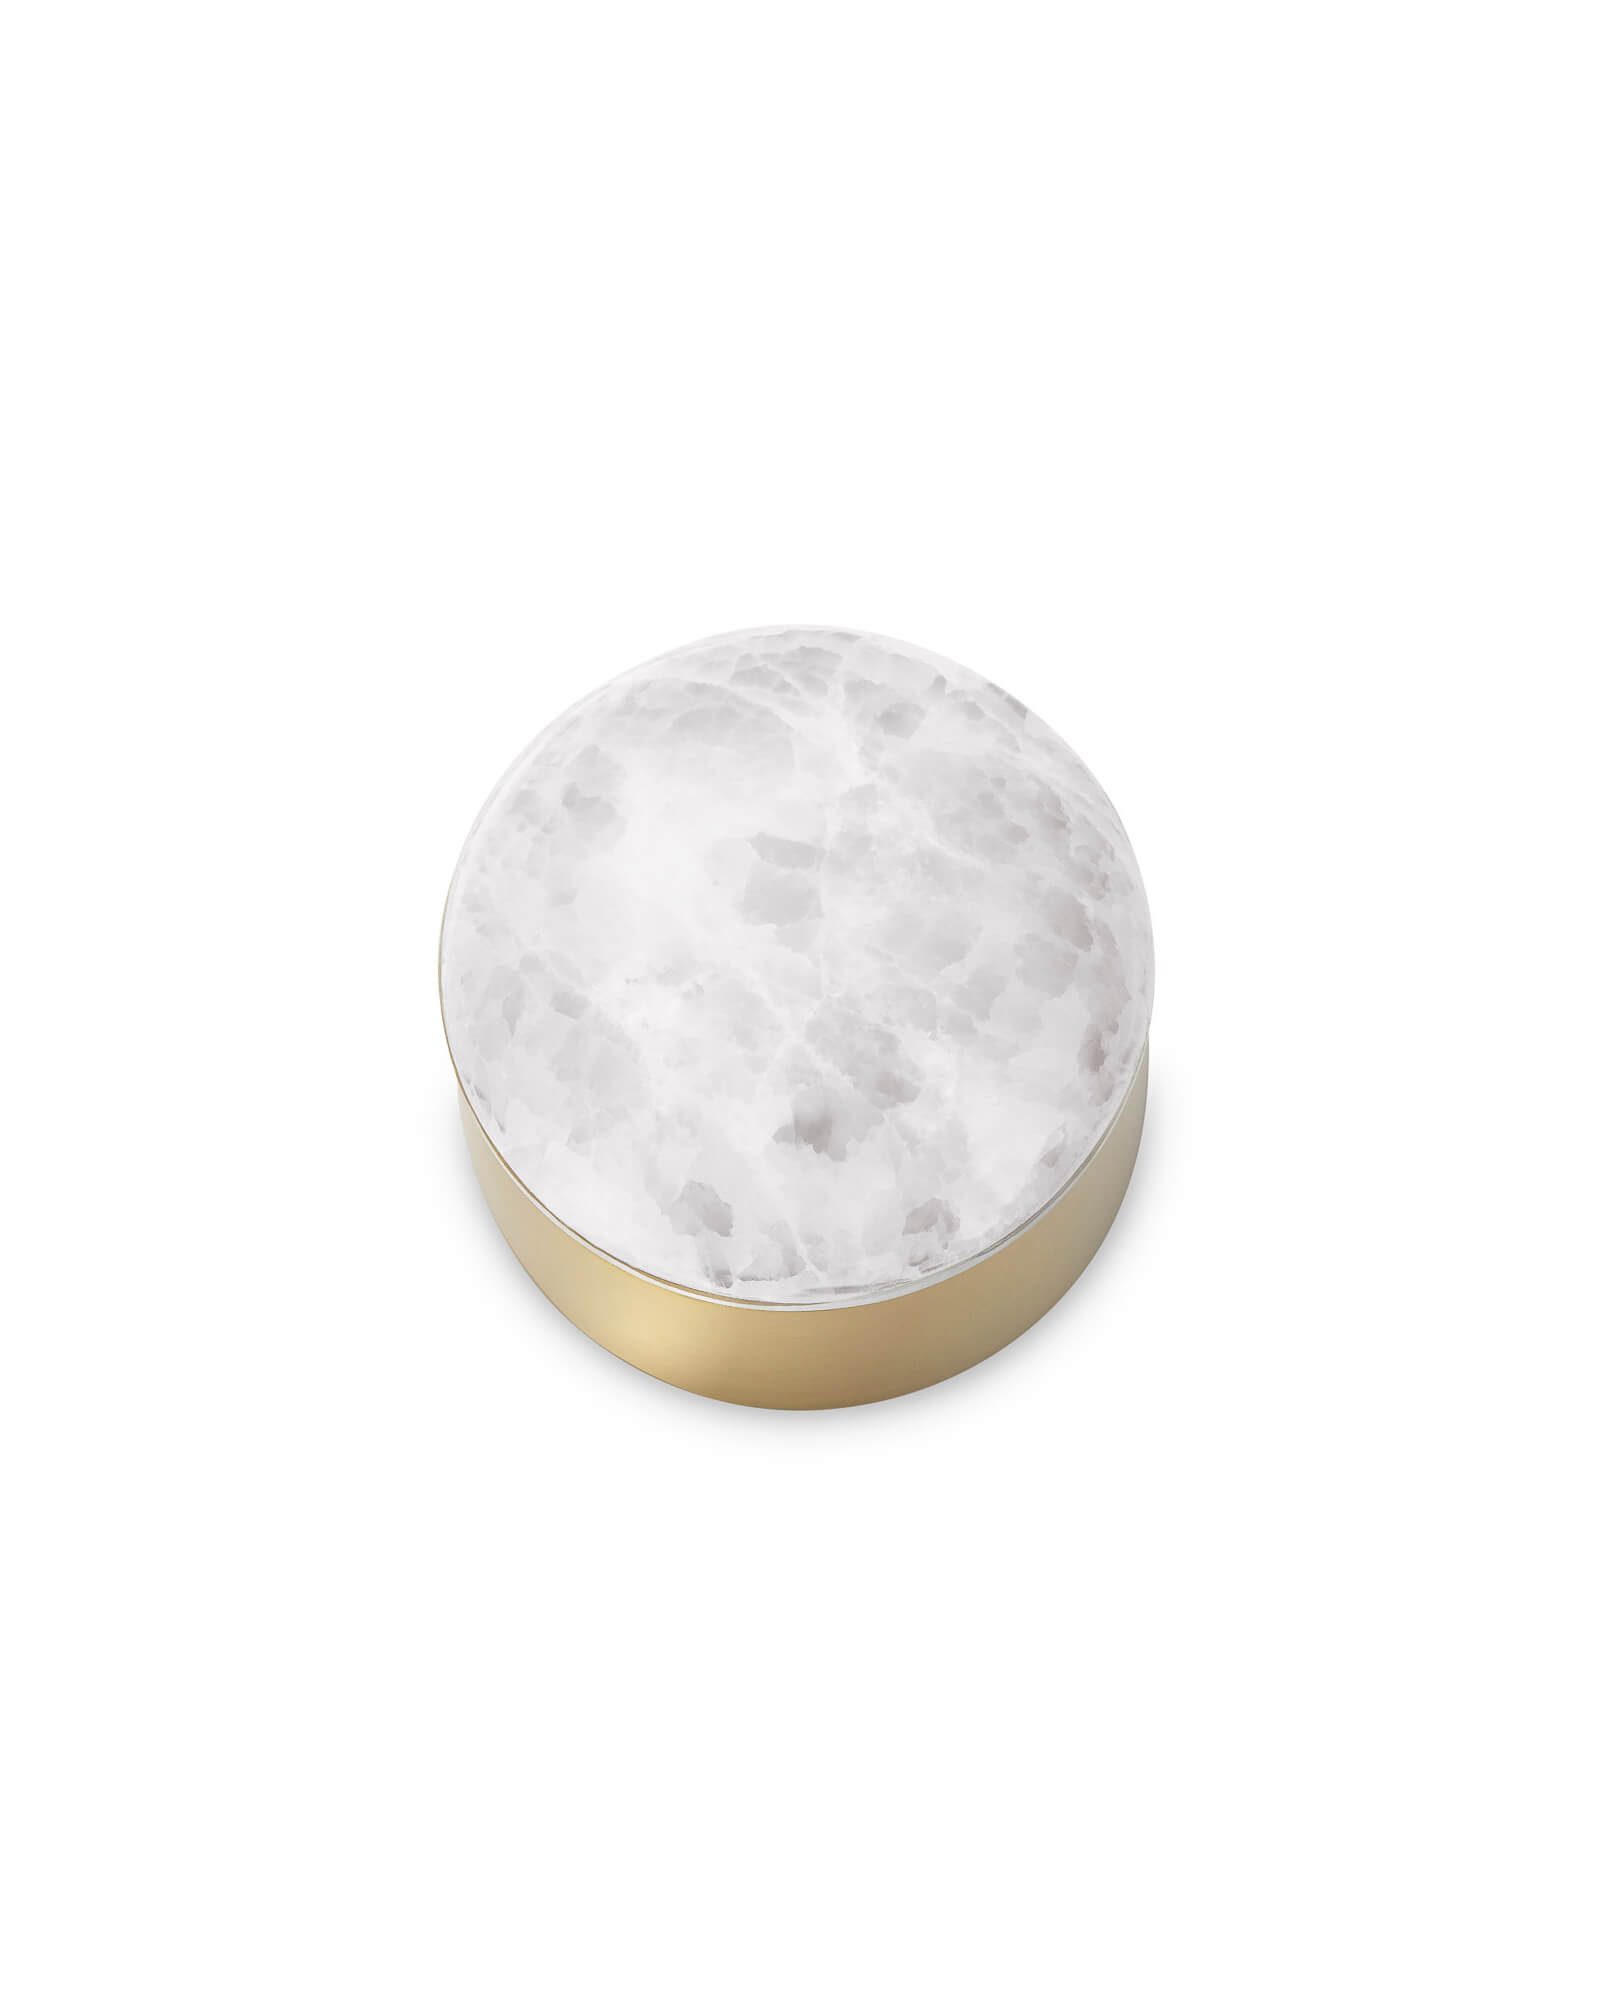 Mini Decorative Brass Dome Box in White Onyx